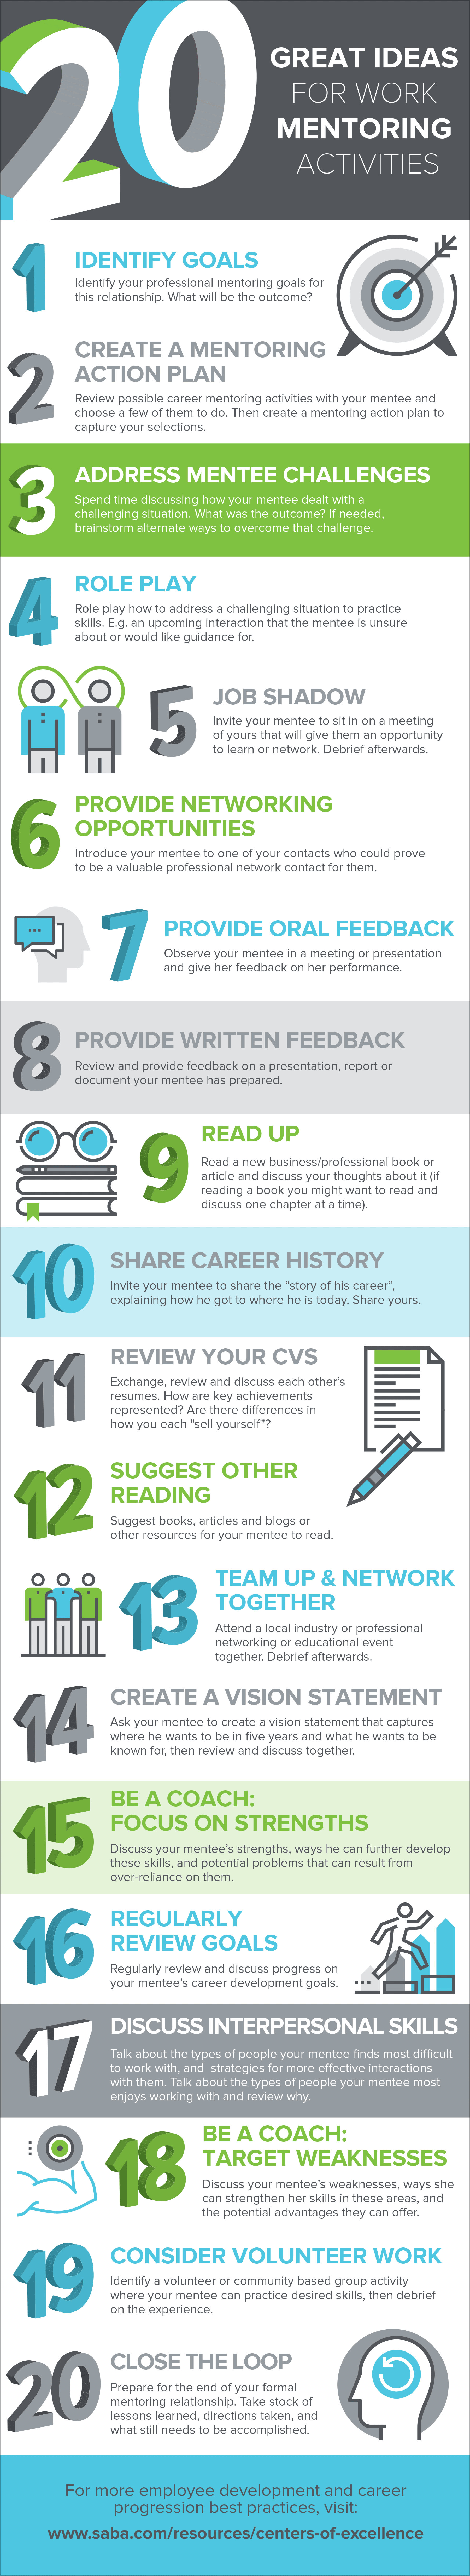 How to Develop a Mentoring Program: 20 Proven Ideas and Activities - Infographic